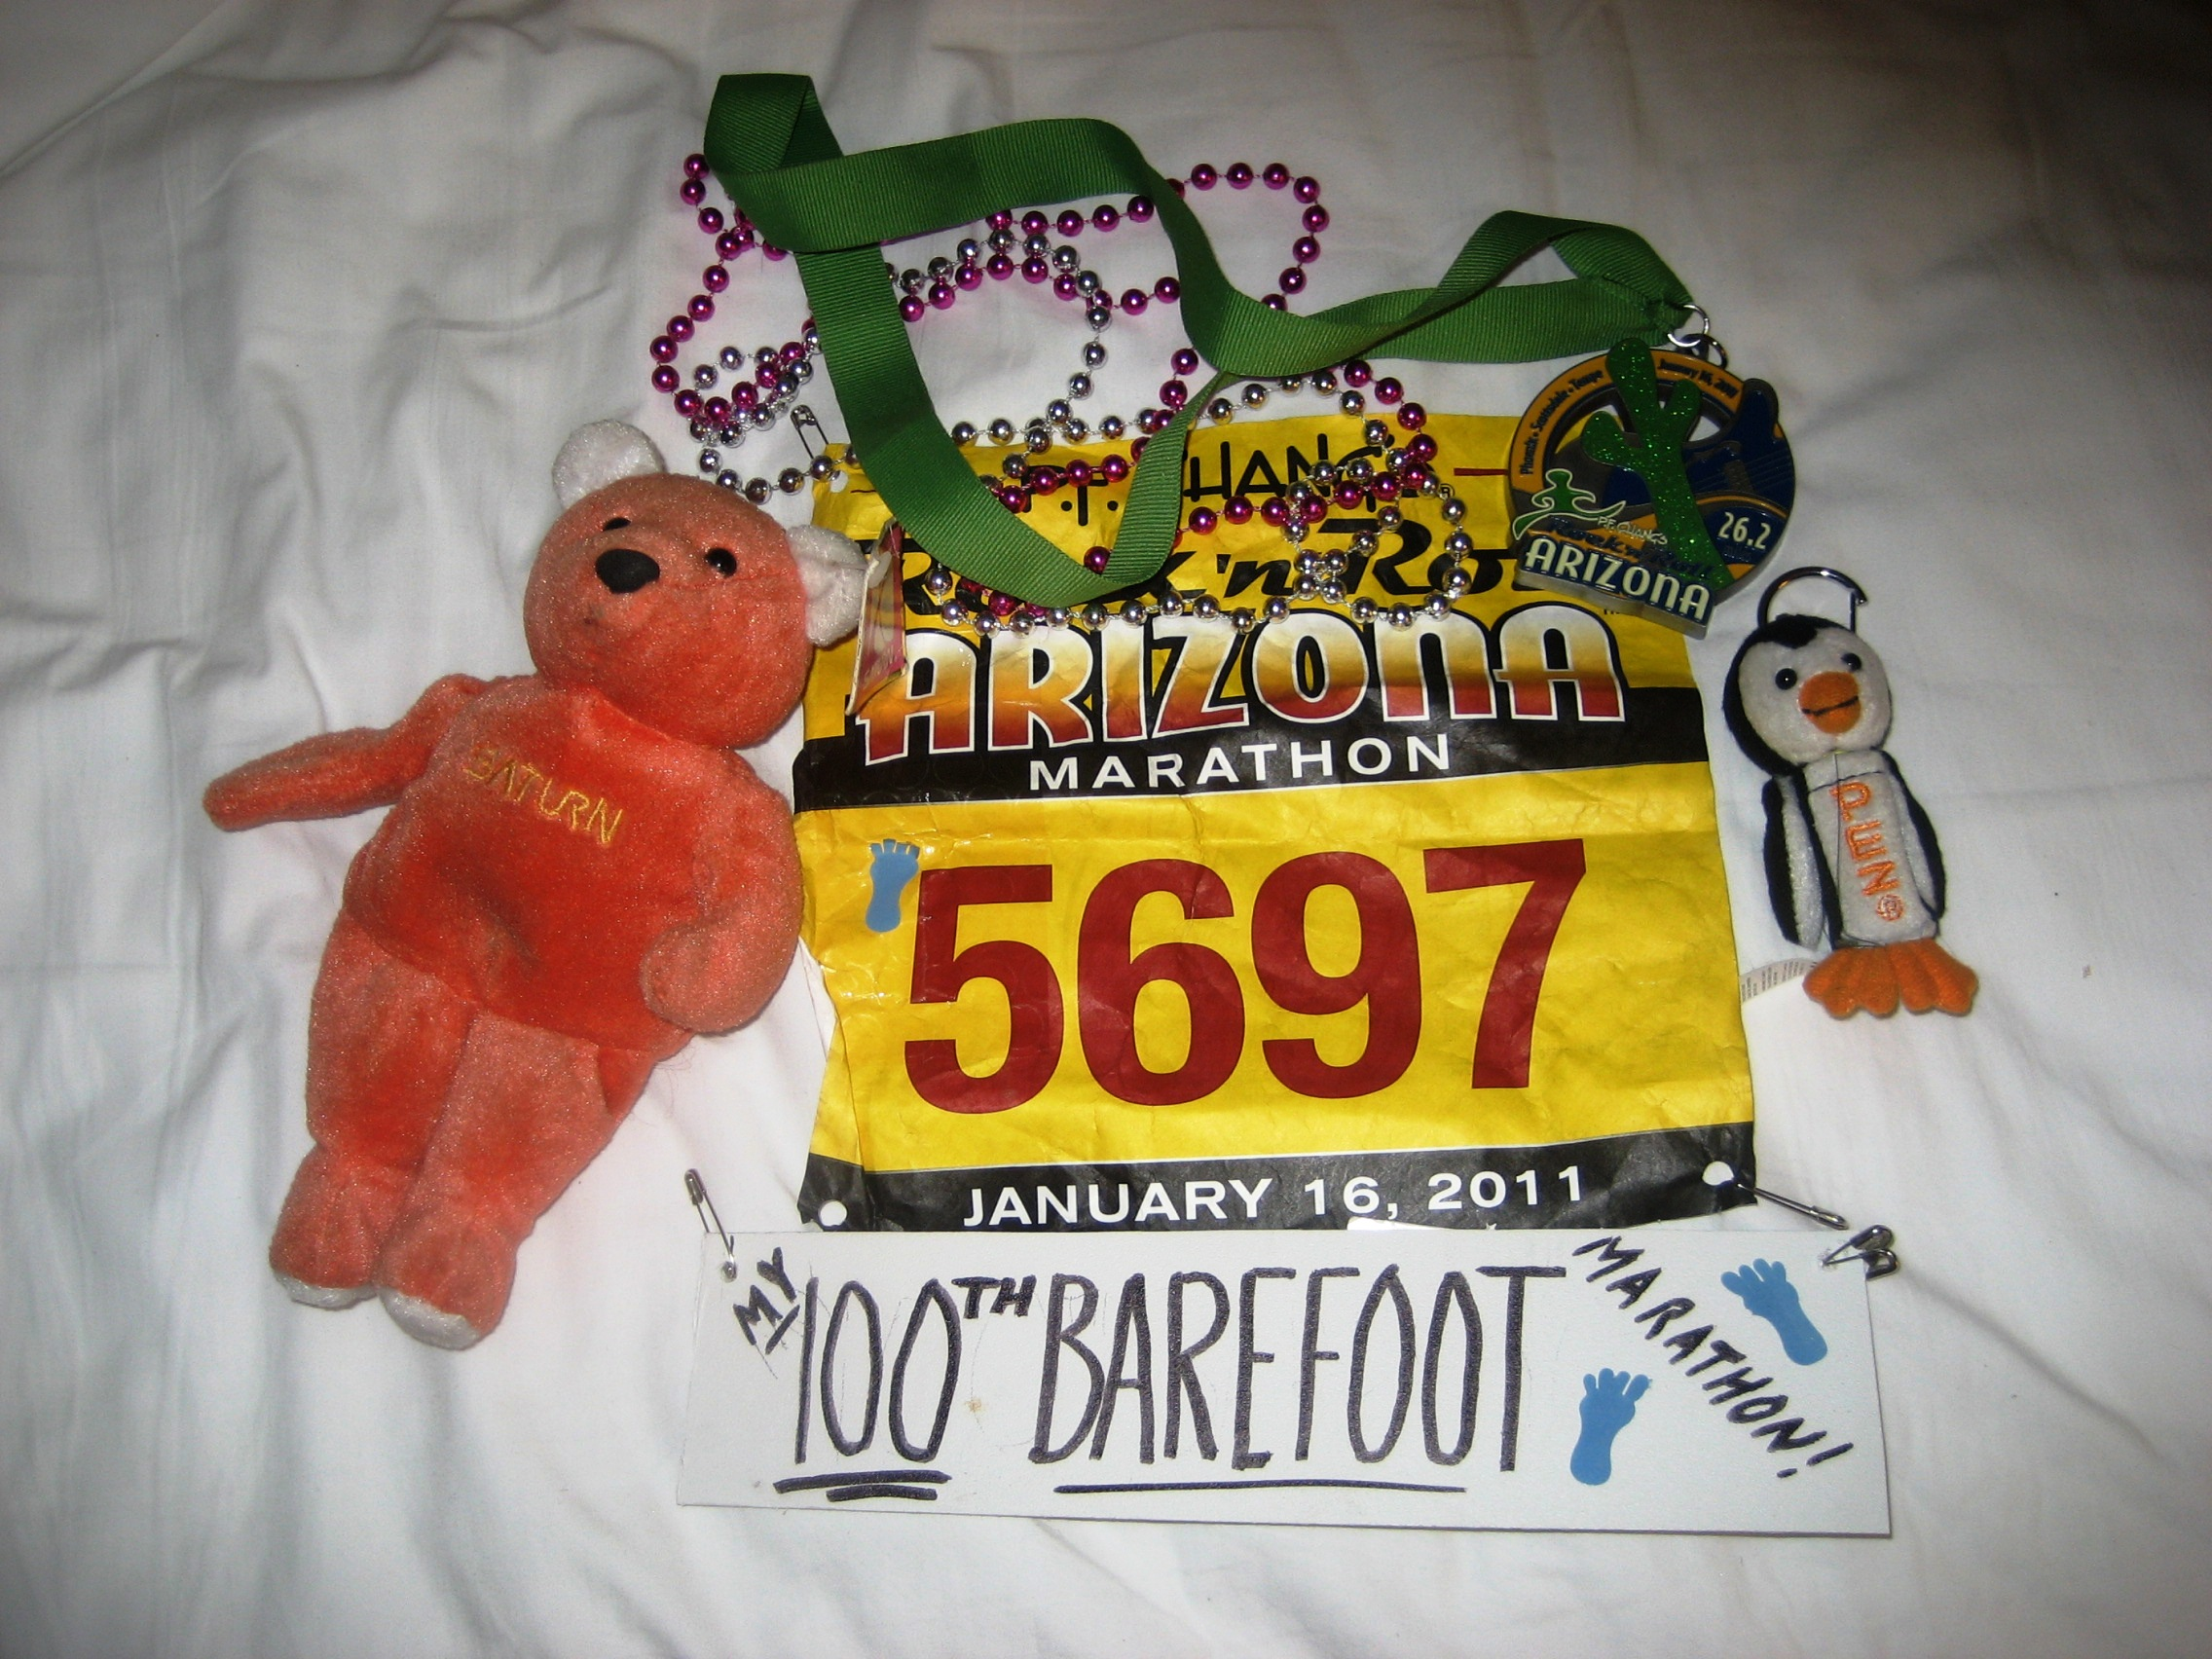 Race bib, shirt, and stuff